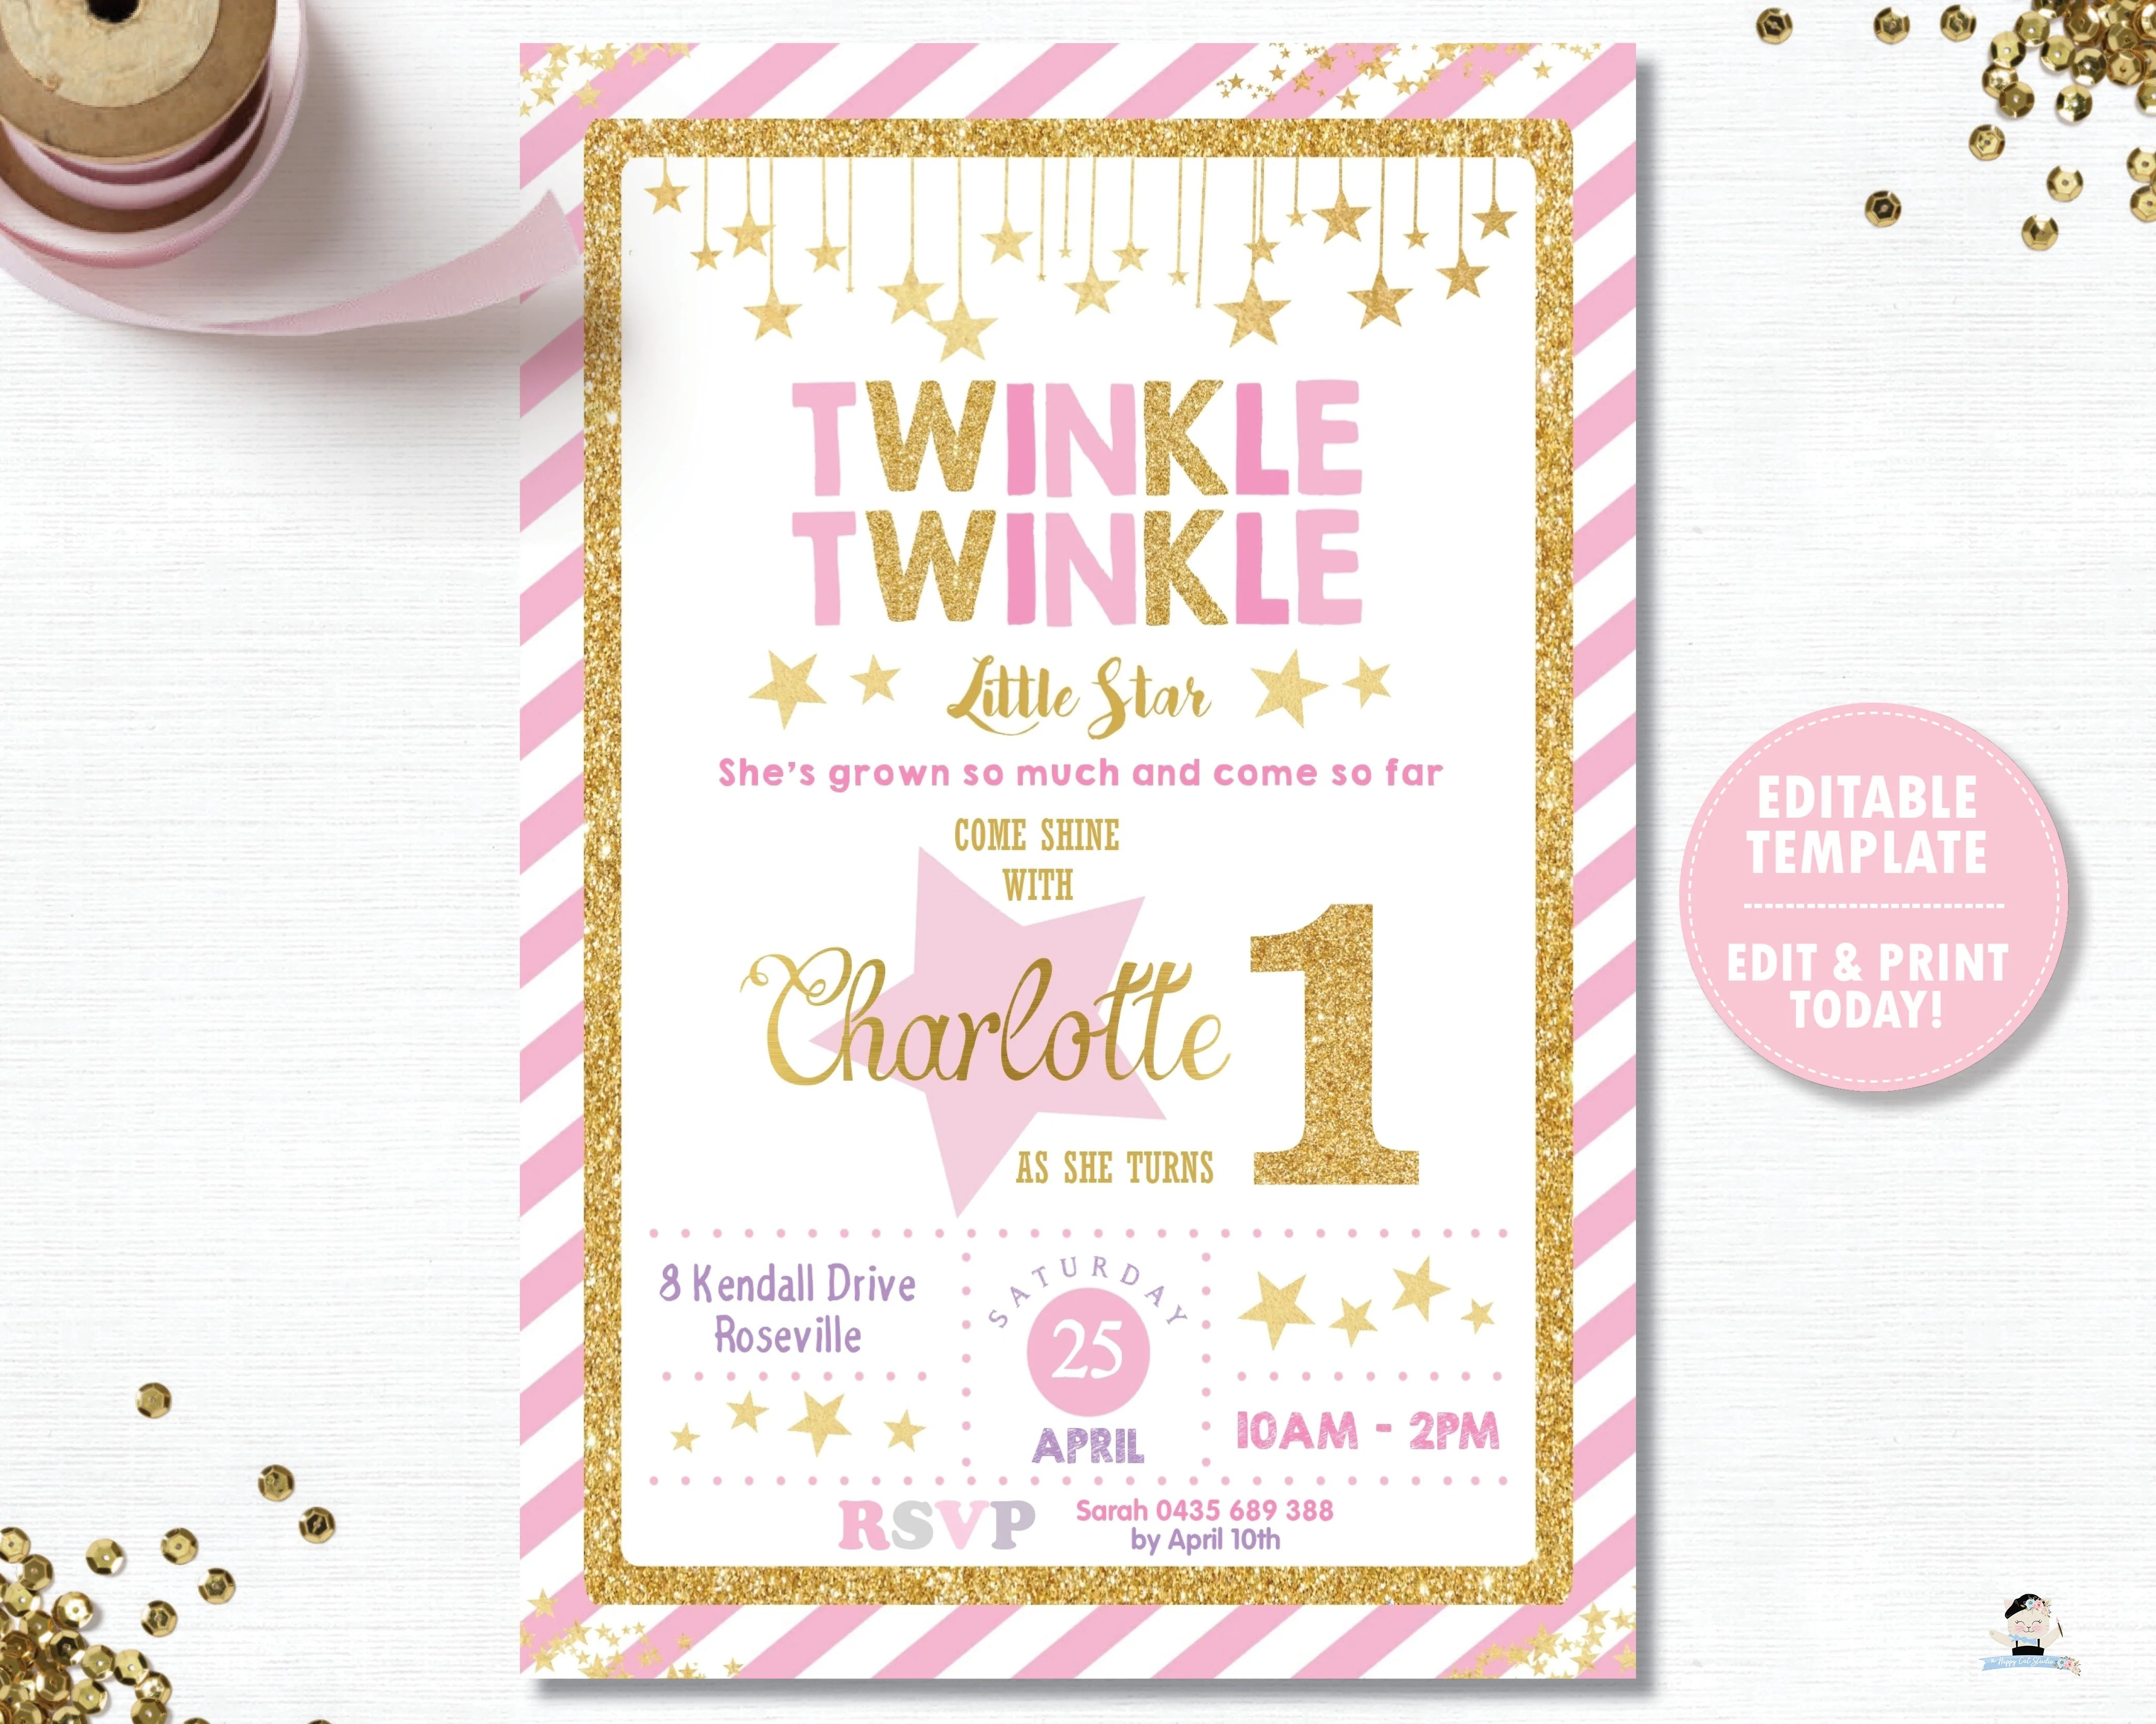 twinkle twinkle little star pink and gold 1st birthday party invitation editable template digital printable file instant download tw1